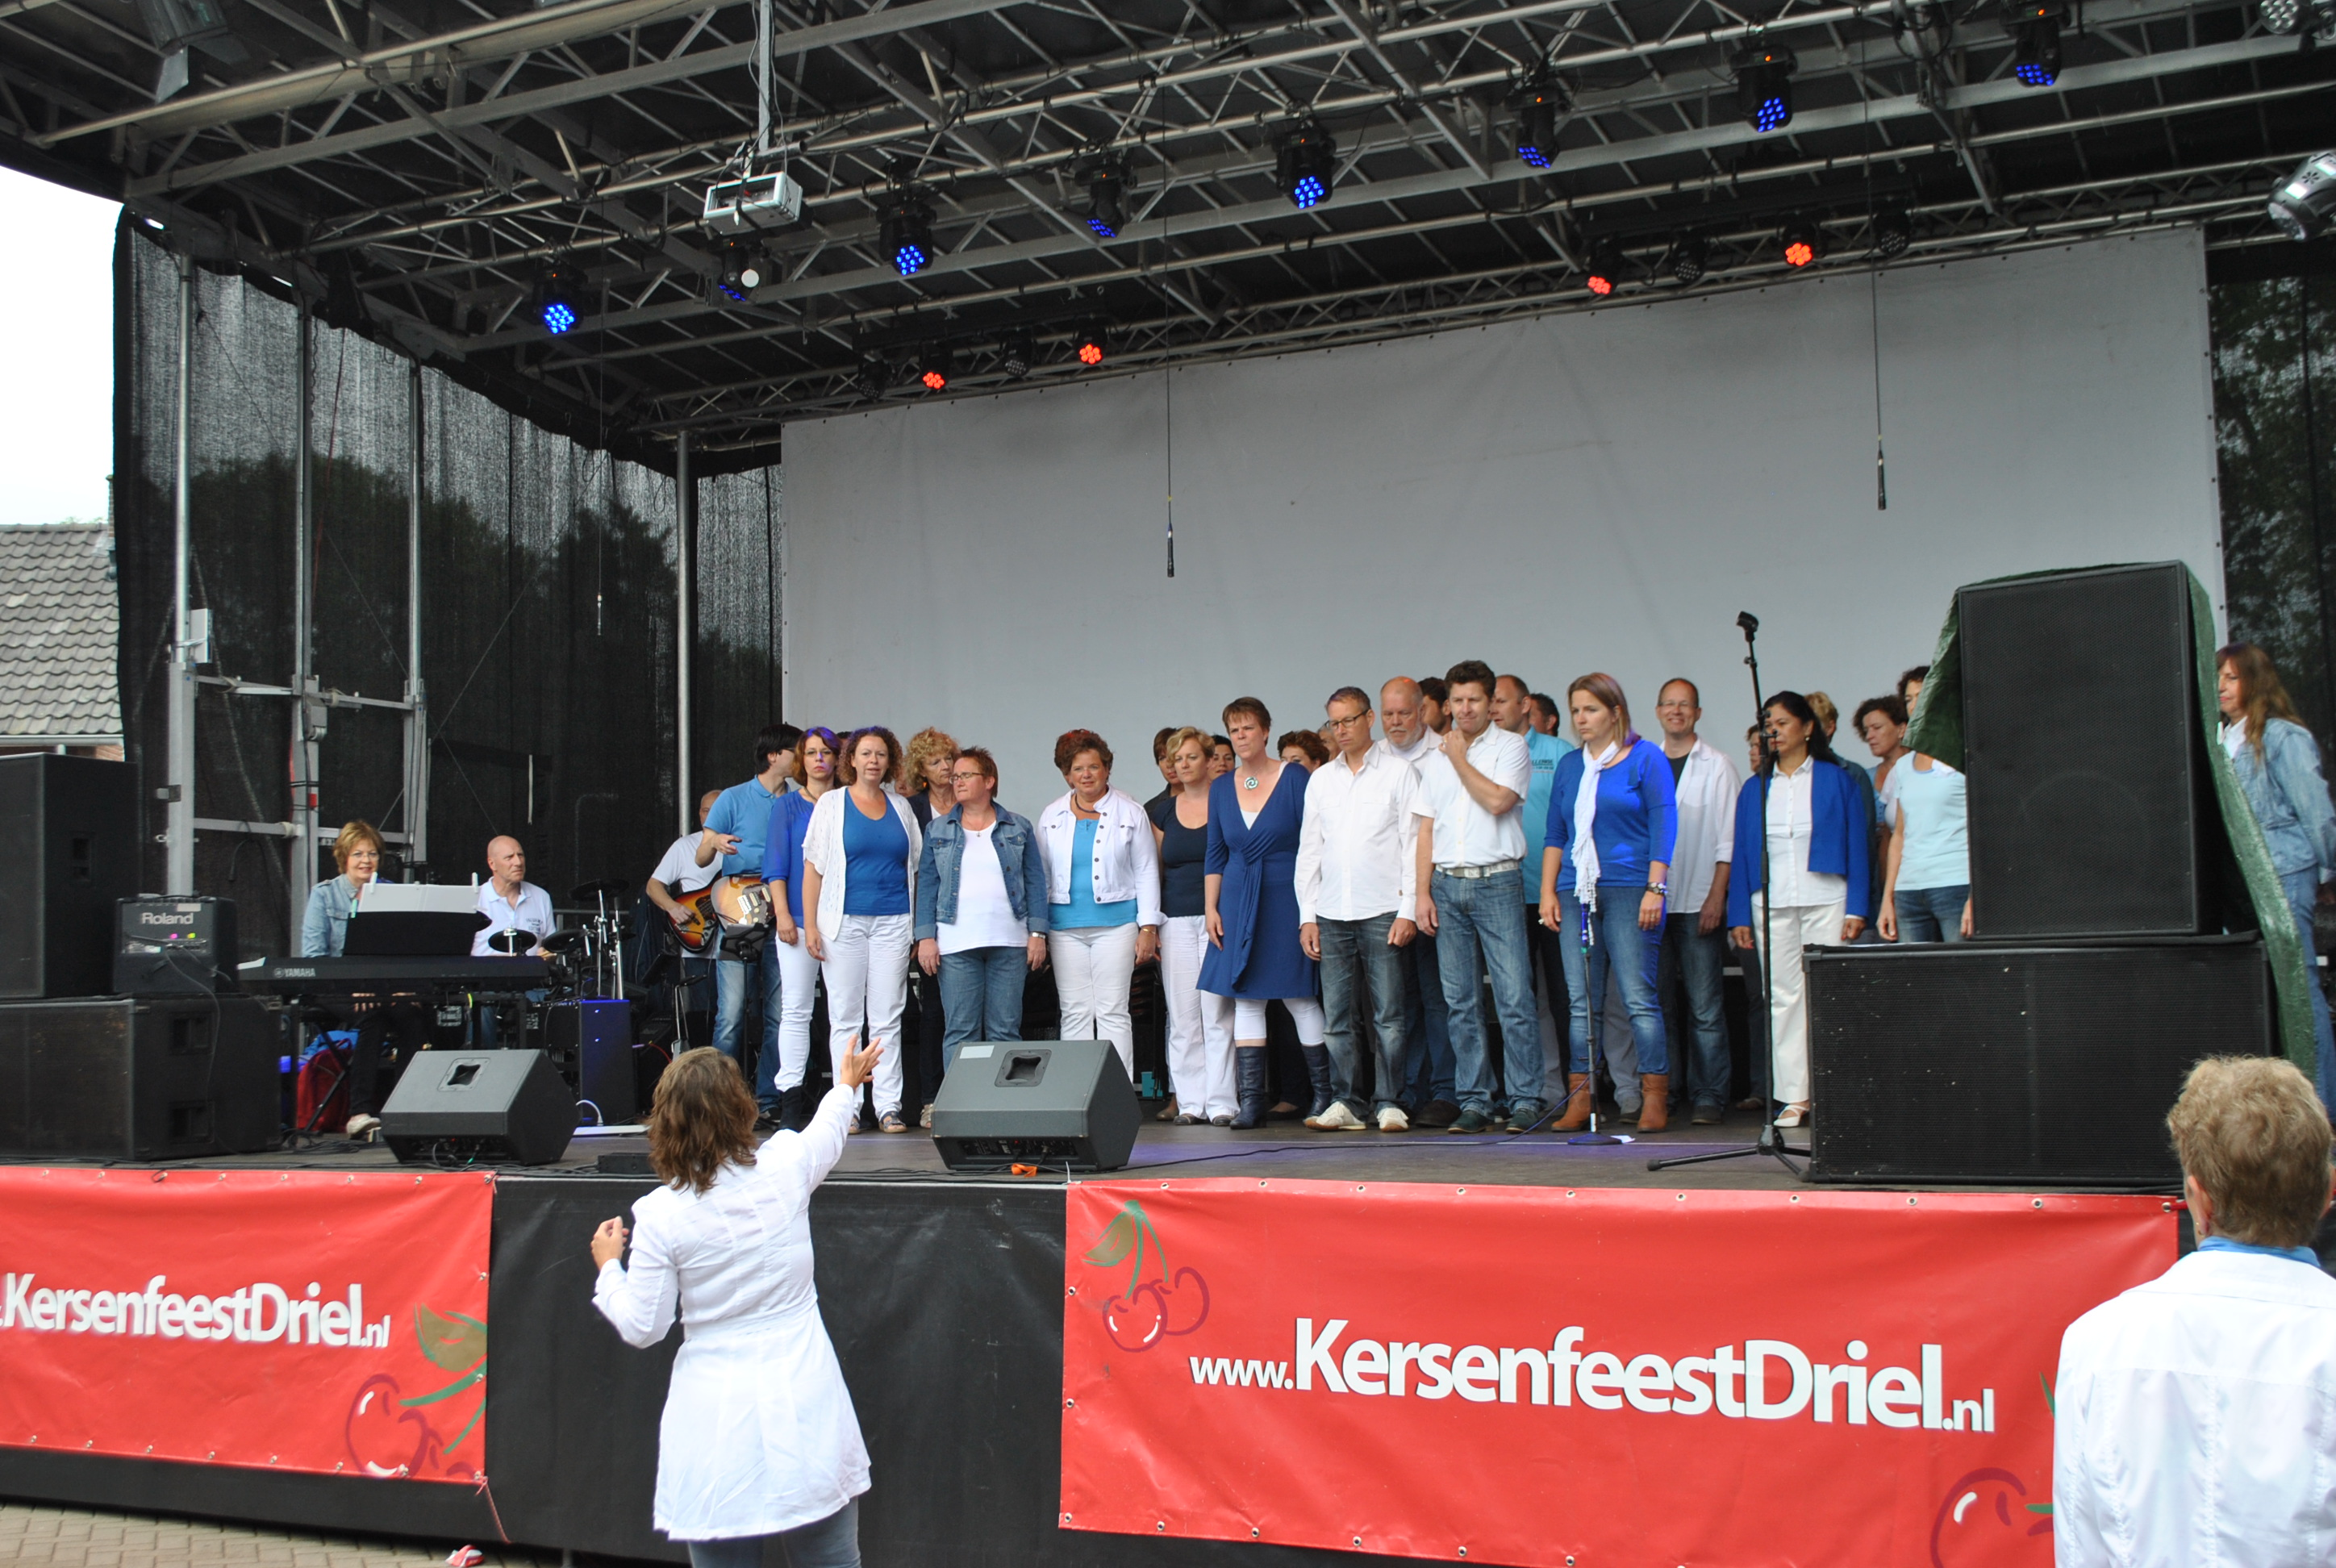 Kersenfeest Driel